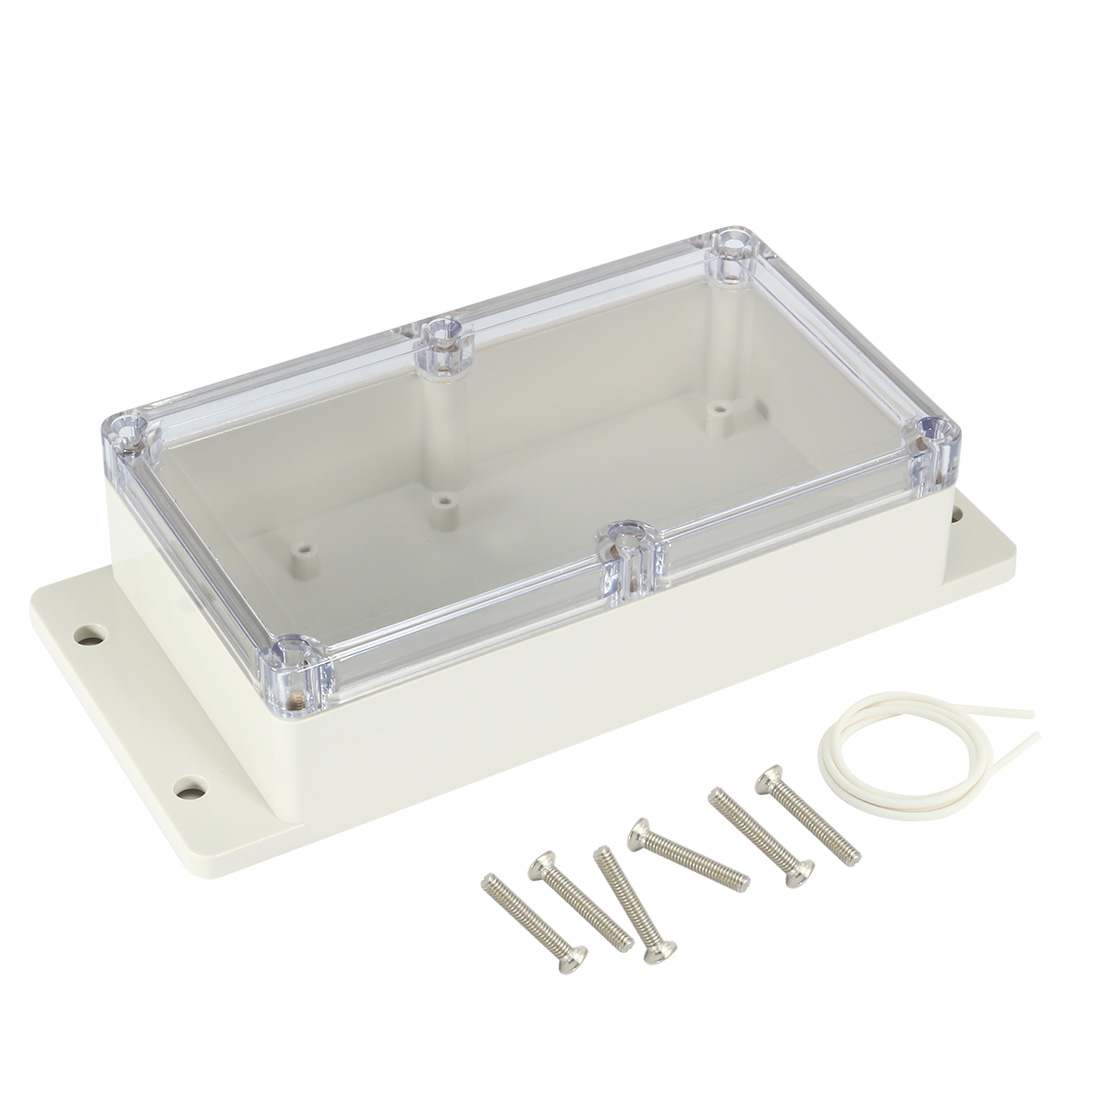 "6.2""x3.5""x1.8""(158mmx90mmx46mm) ABS Junction Box Universal Project Enclosure w PC Transparent Cover"